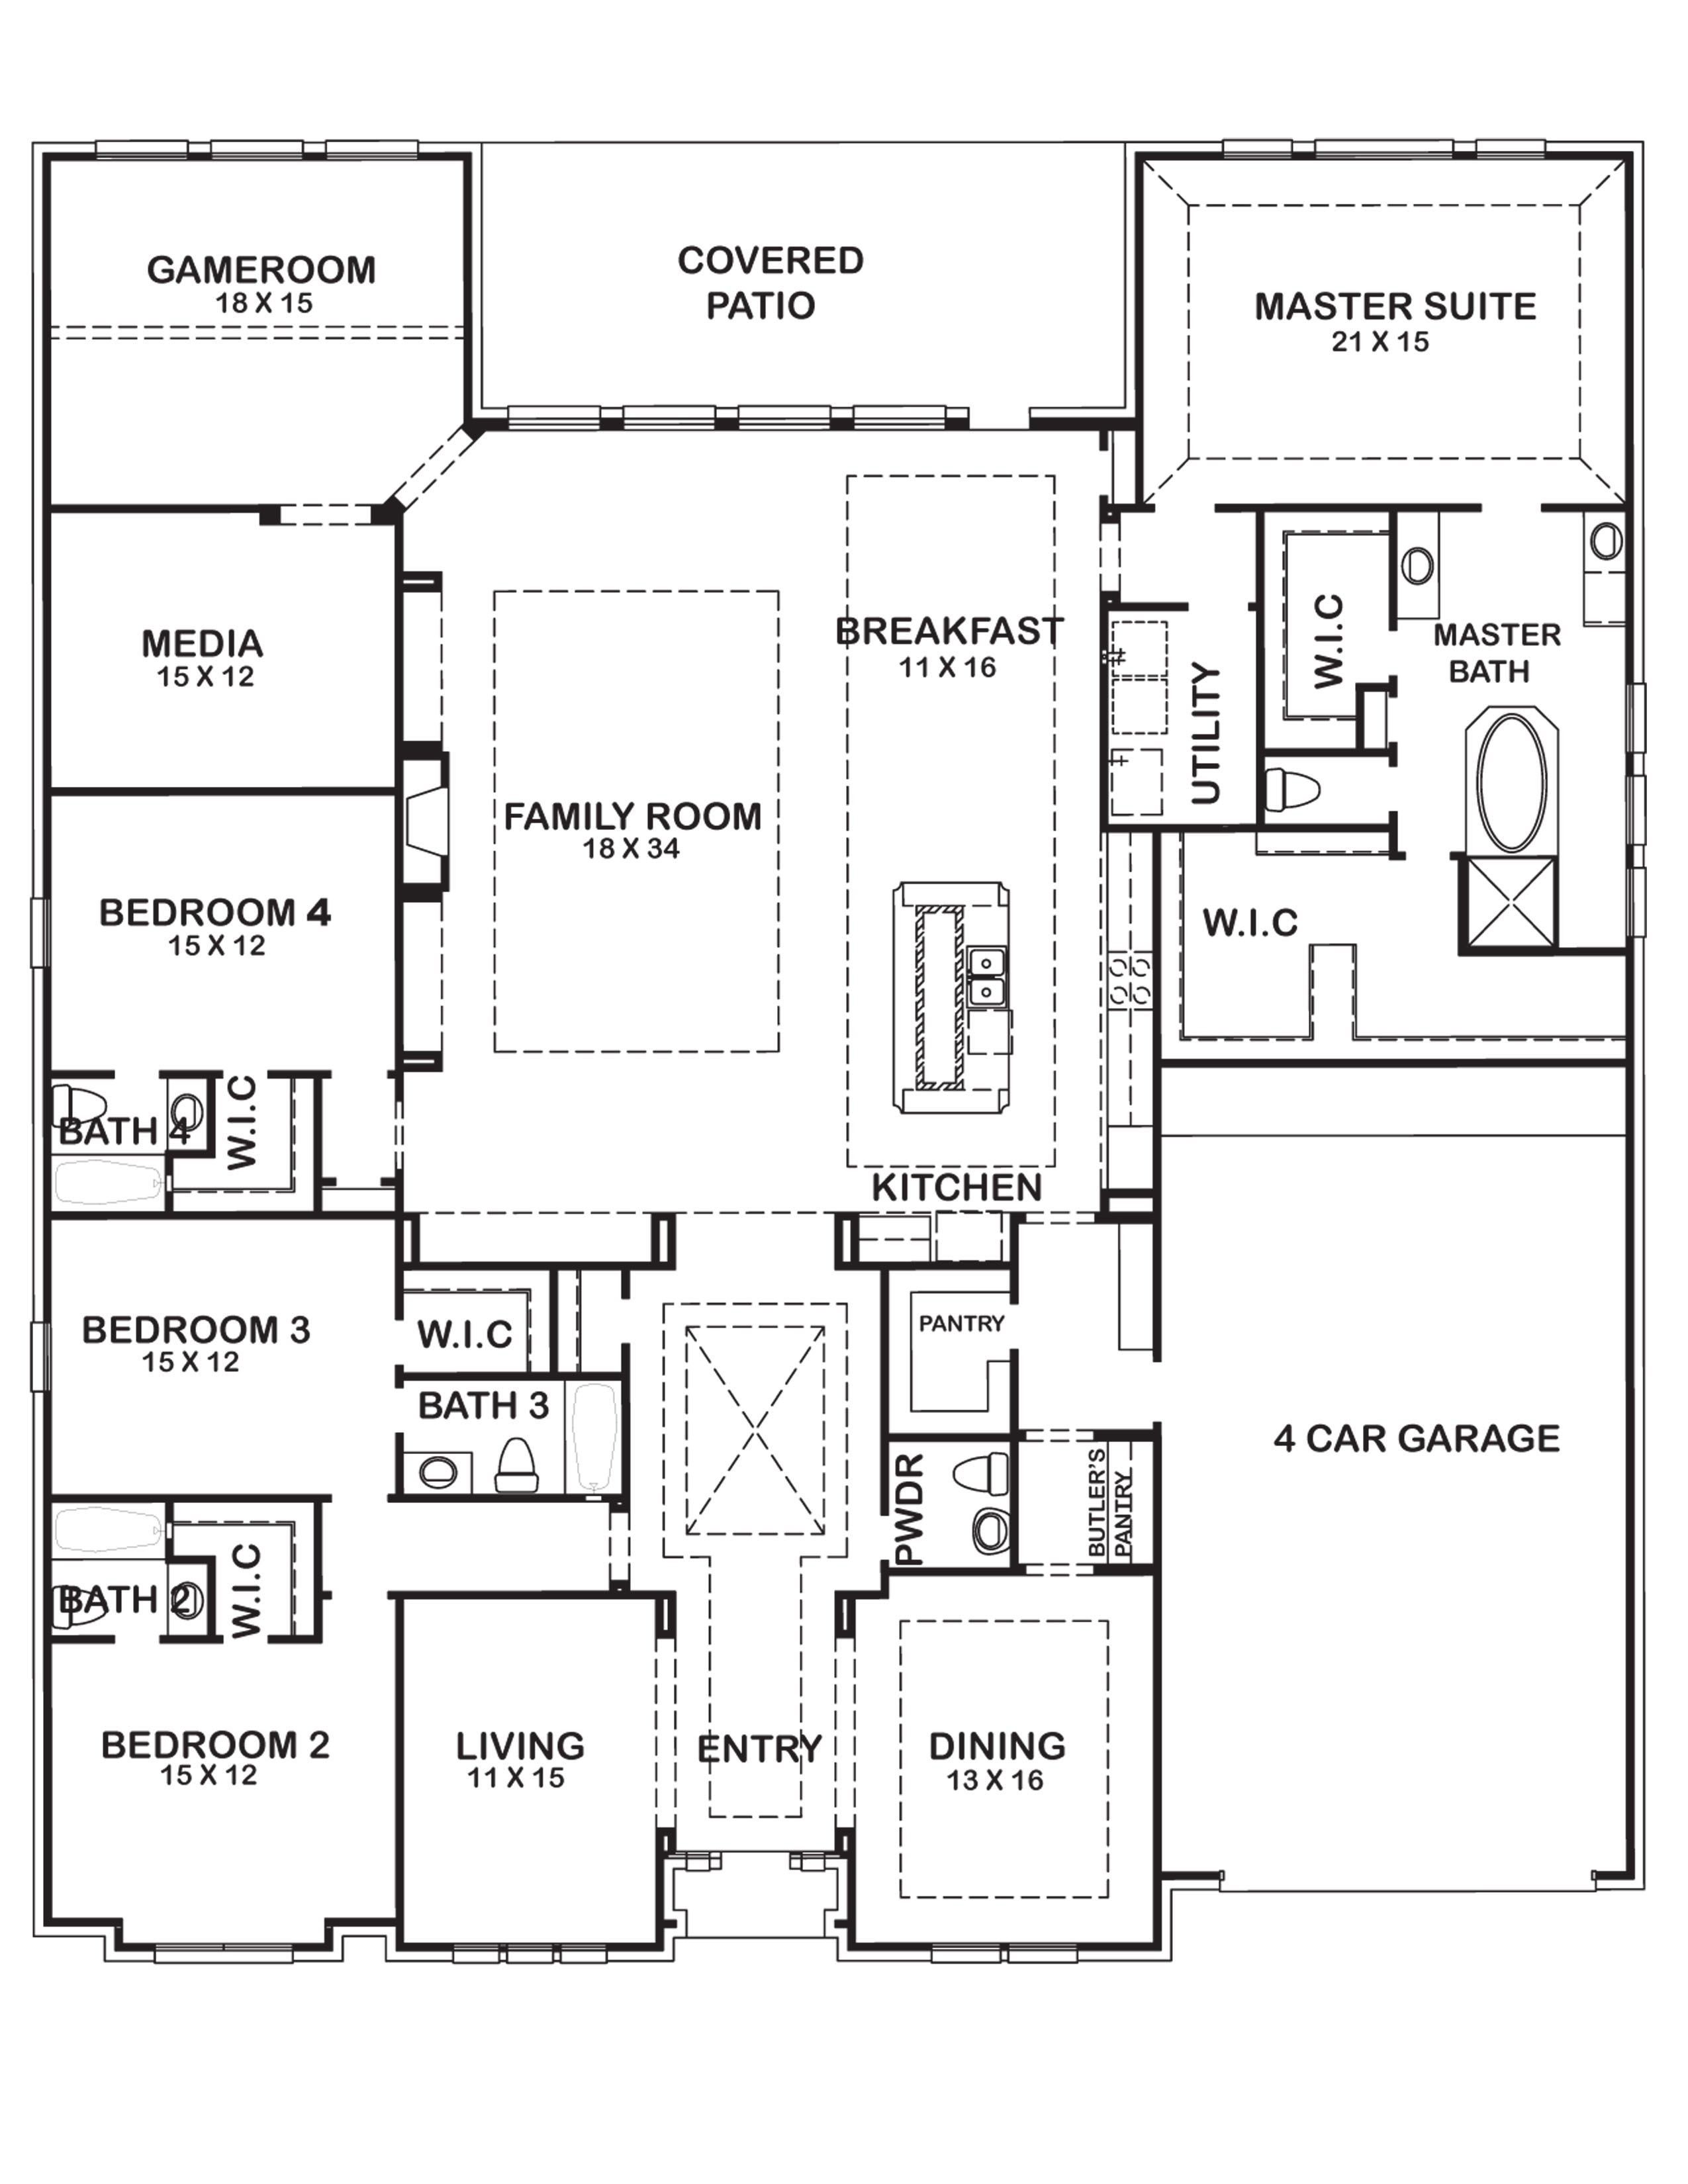 17410 Stone Stream Dr Houston Houses New Home Communities New Home Builders